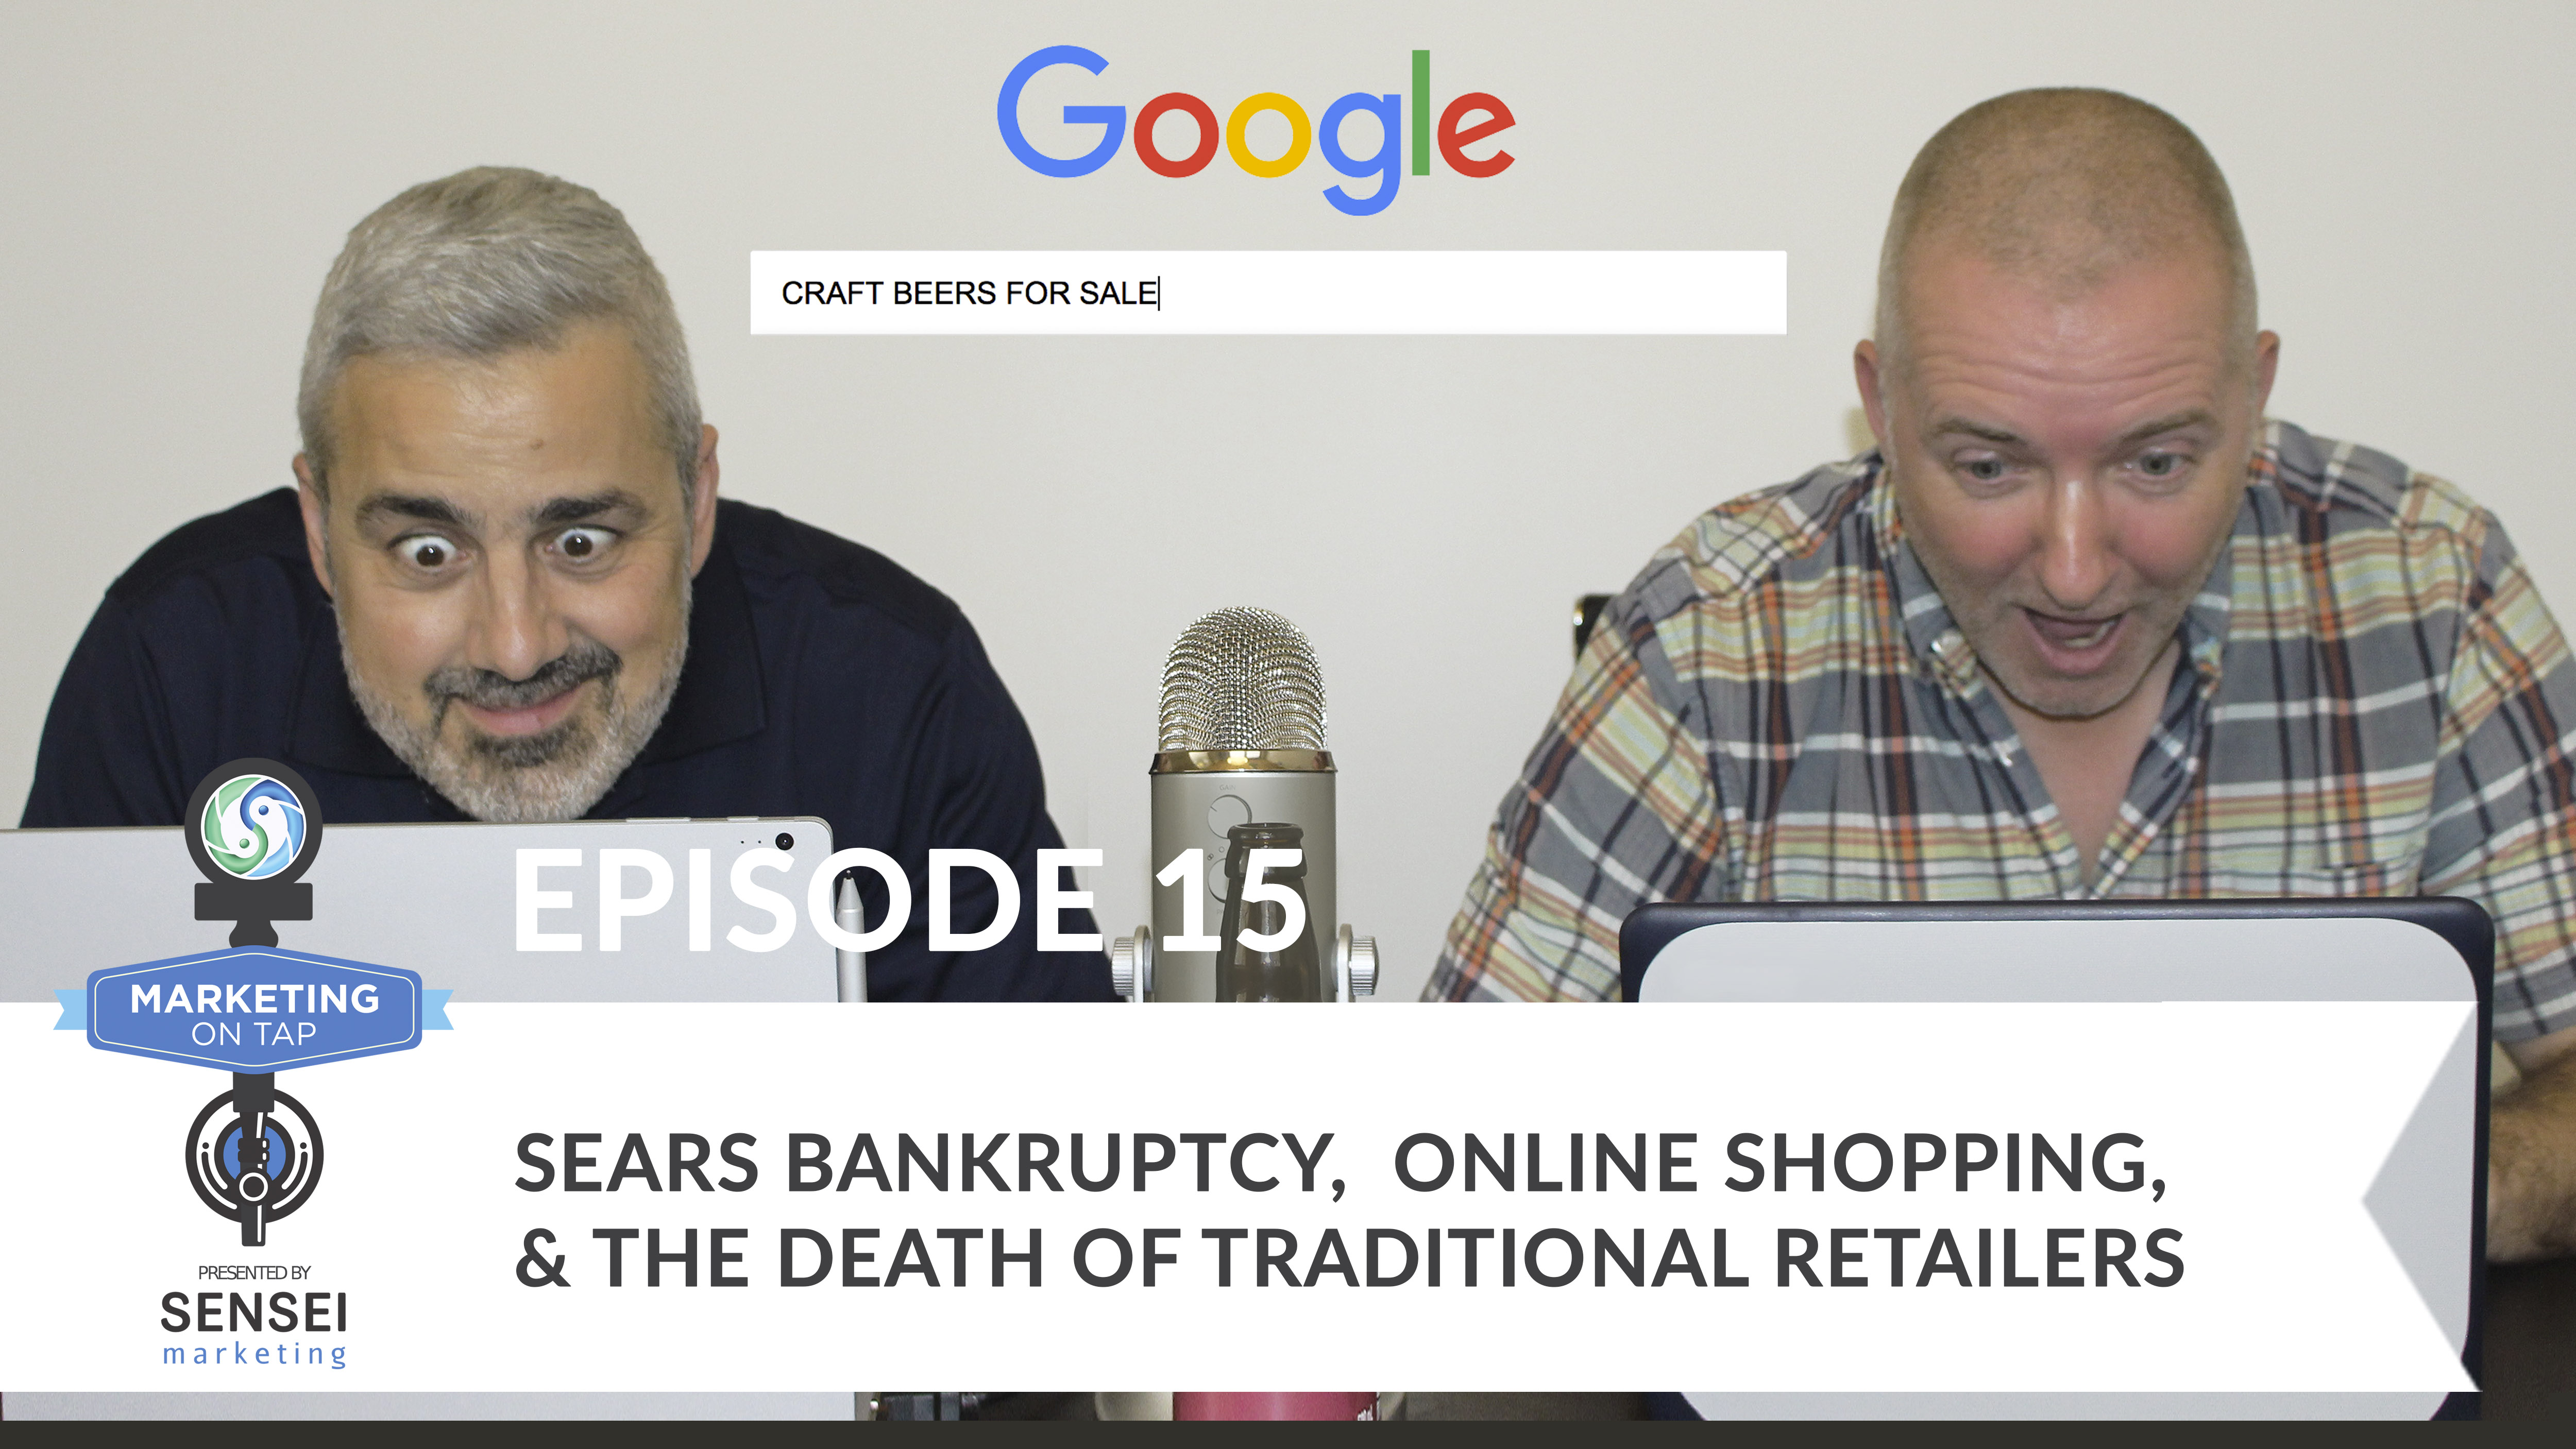 Marketing on Tap Episode 15: Sears Bankruptcy